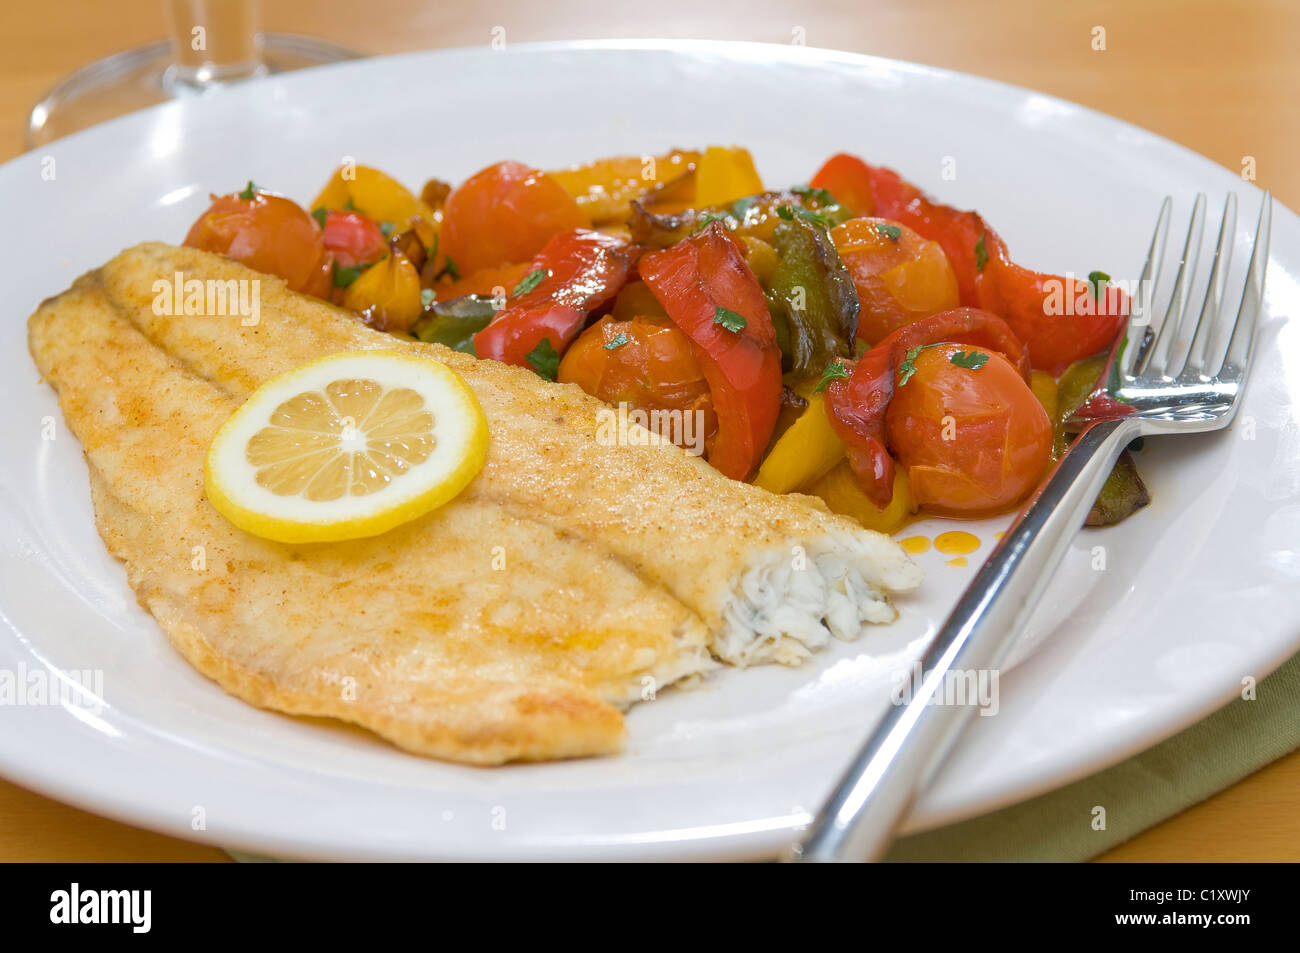 Lightly dusted plaice fillet with roasted salad. - Stock Image